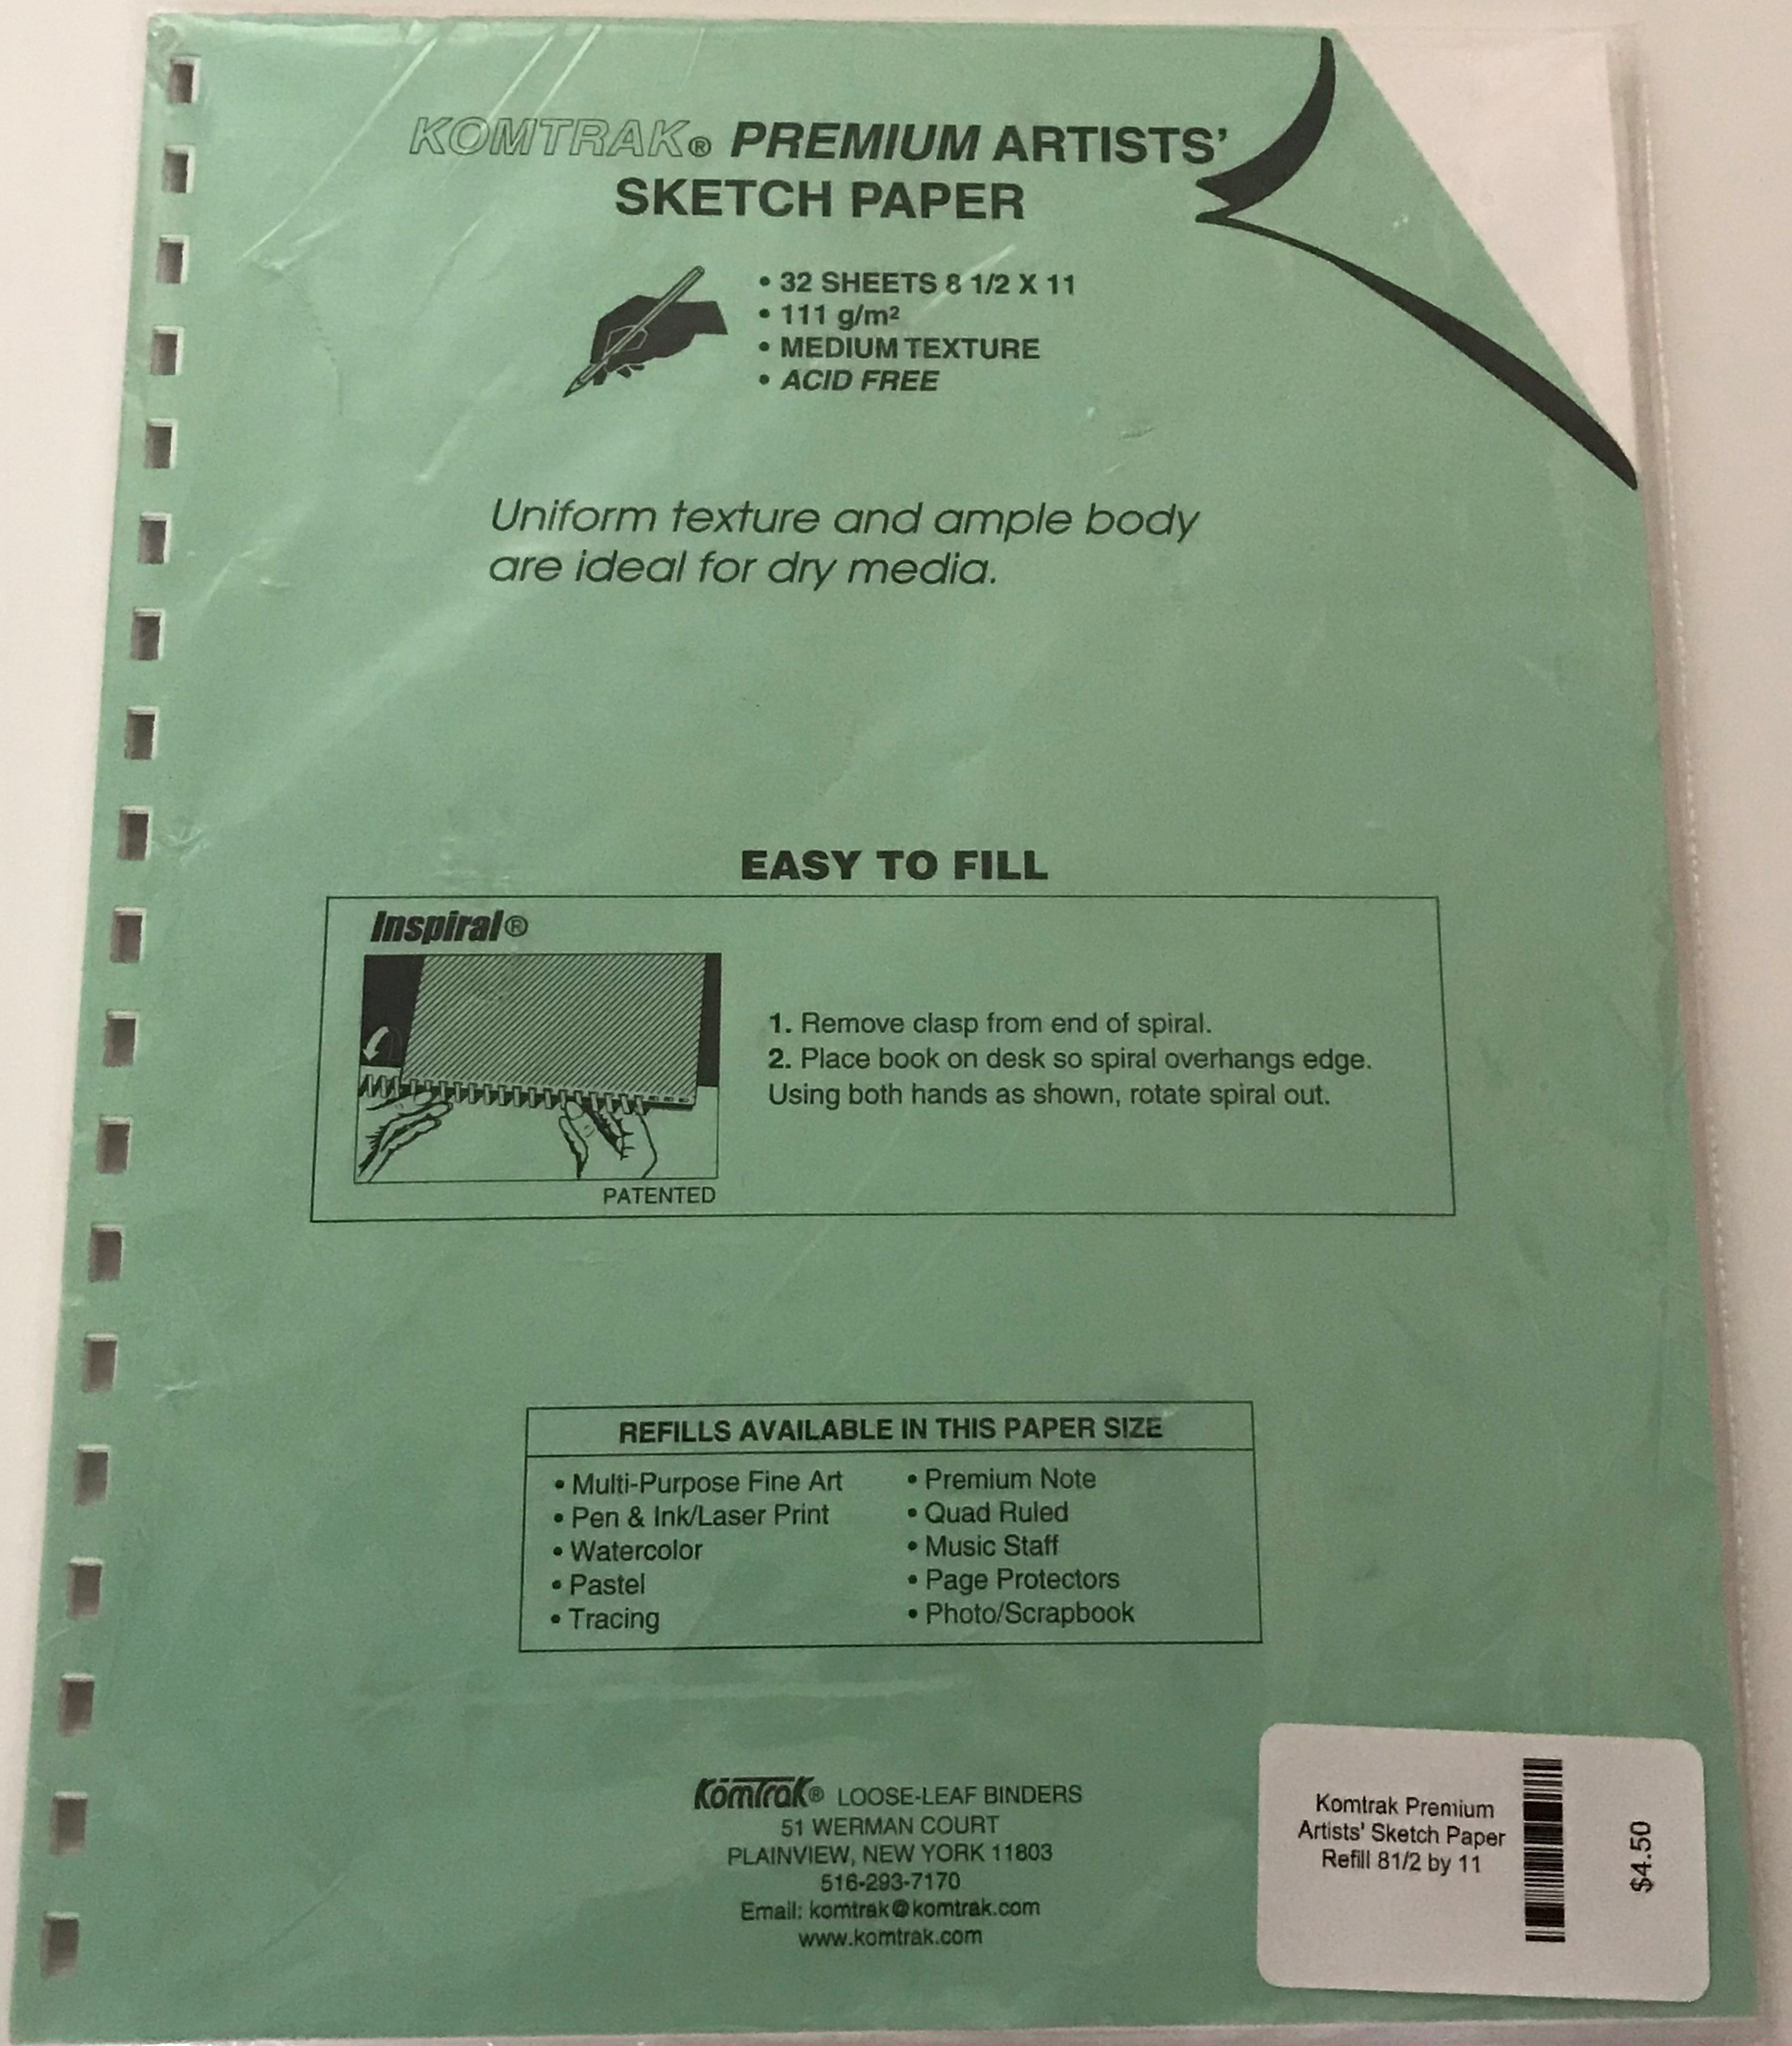 Image for the Komtrak Premium Artists' Sketch Paper Refill 8 1/2 x 11 product